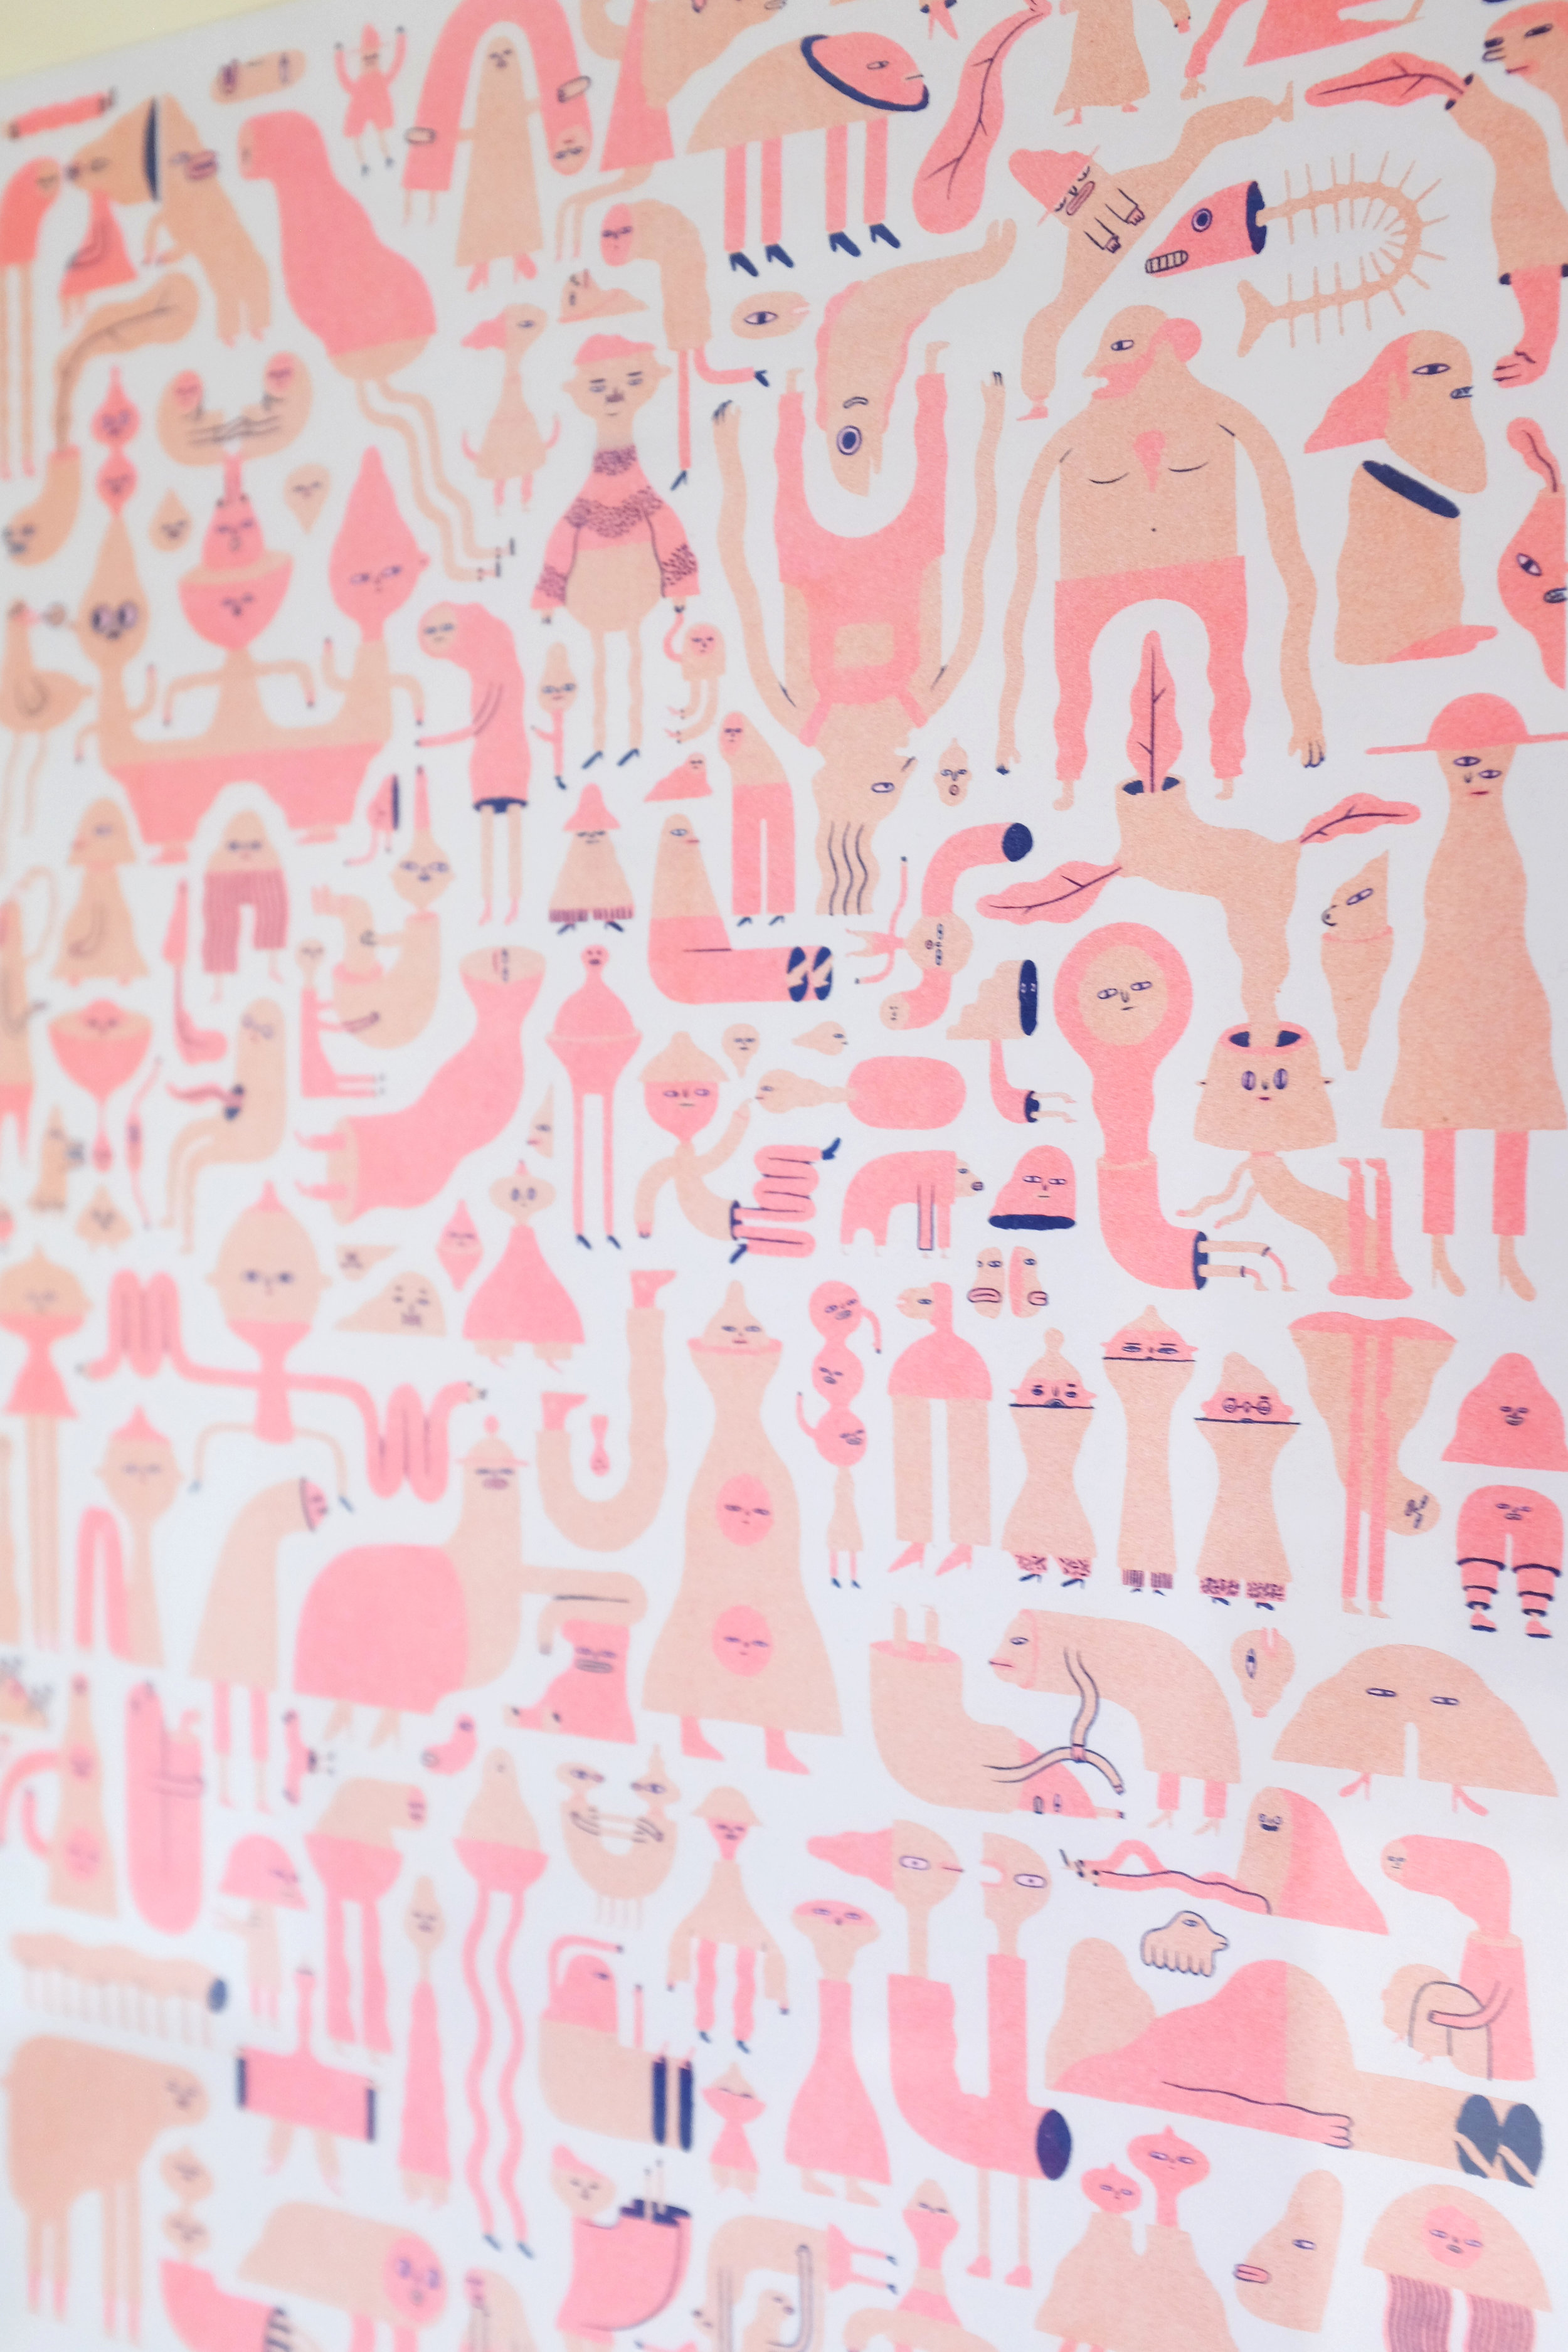 Wobbleparty 3-colour Riso print, features 150 individual characters.